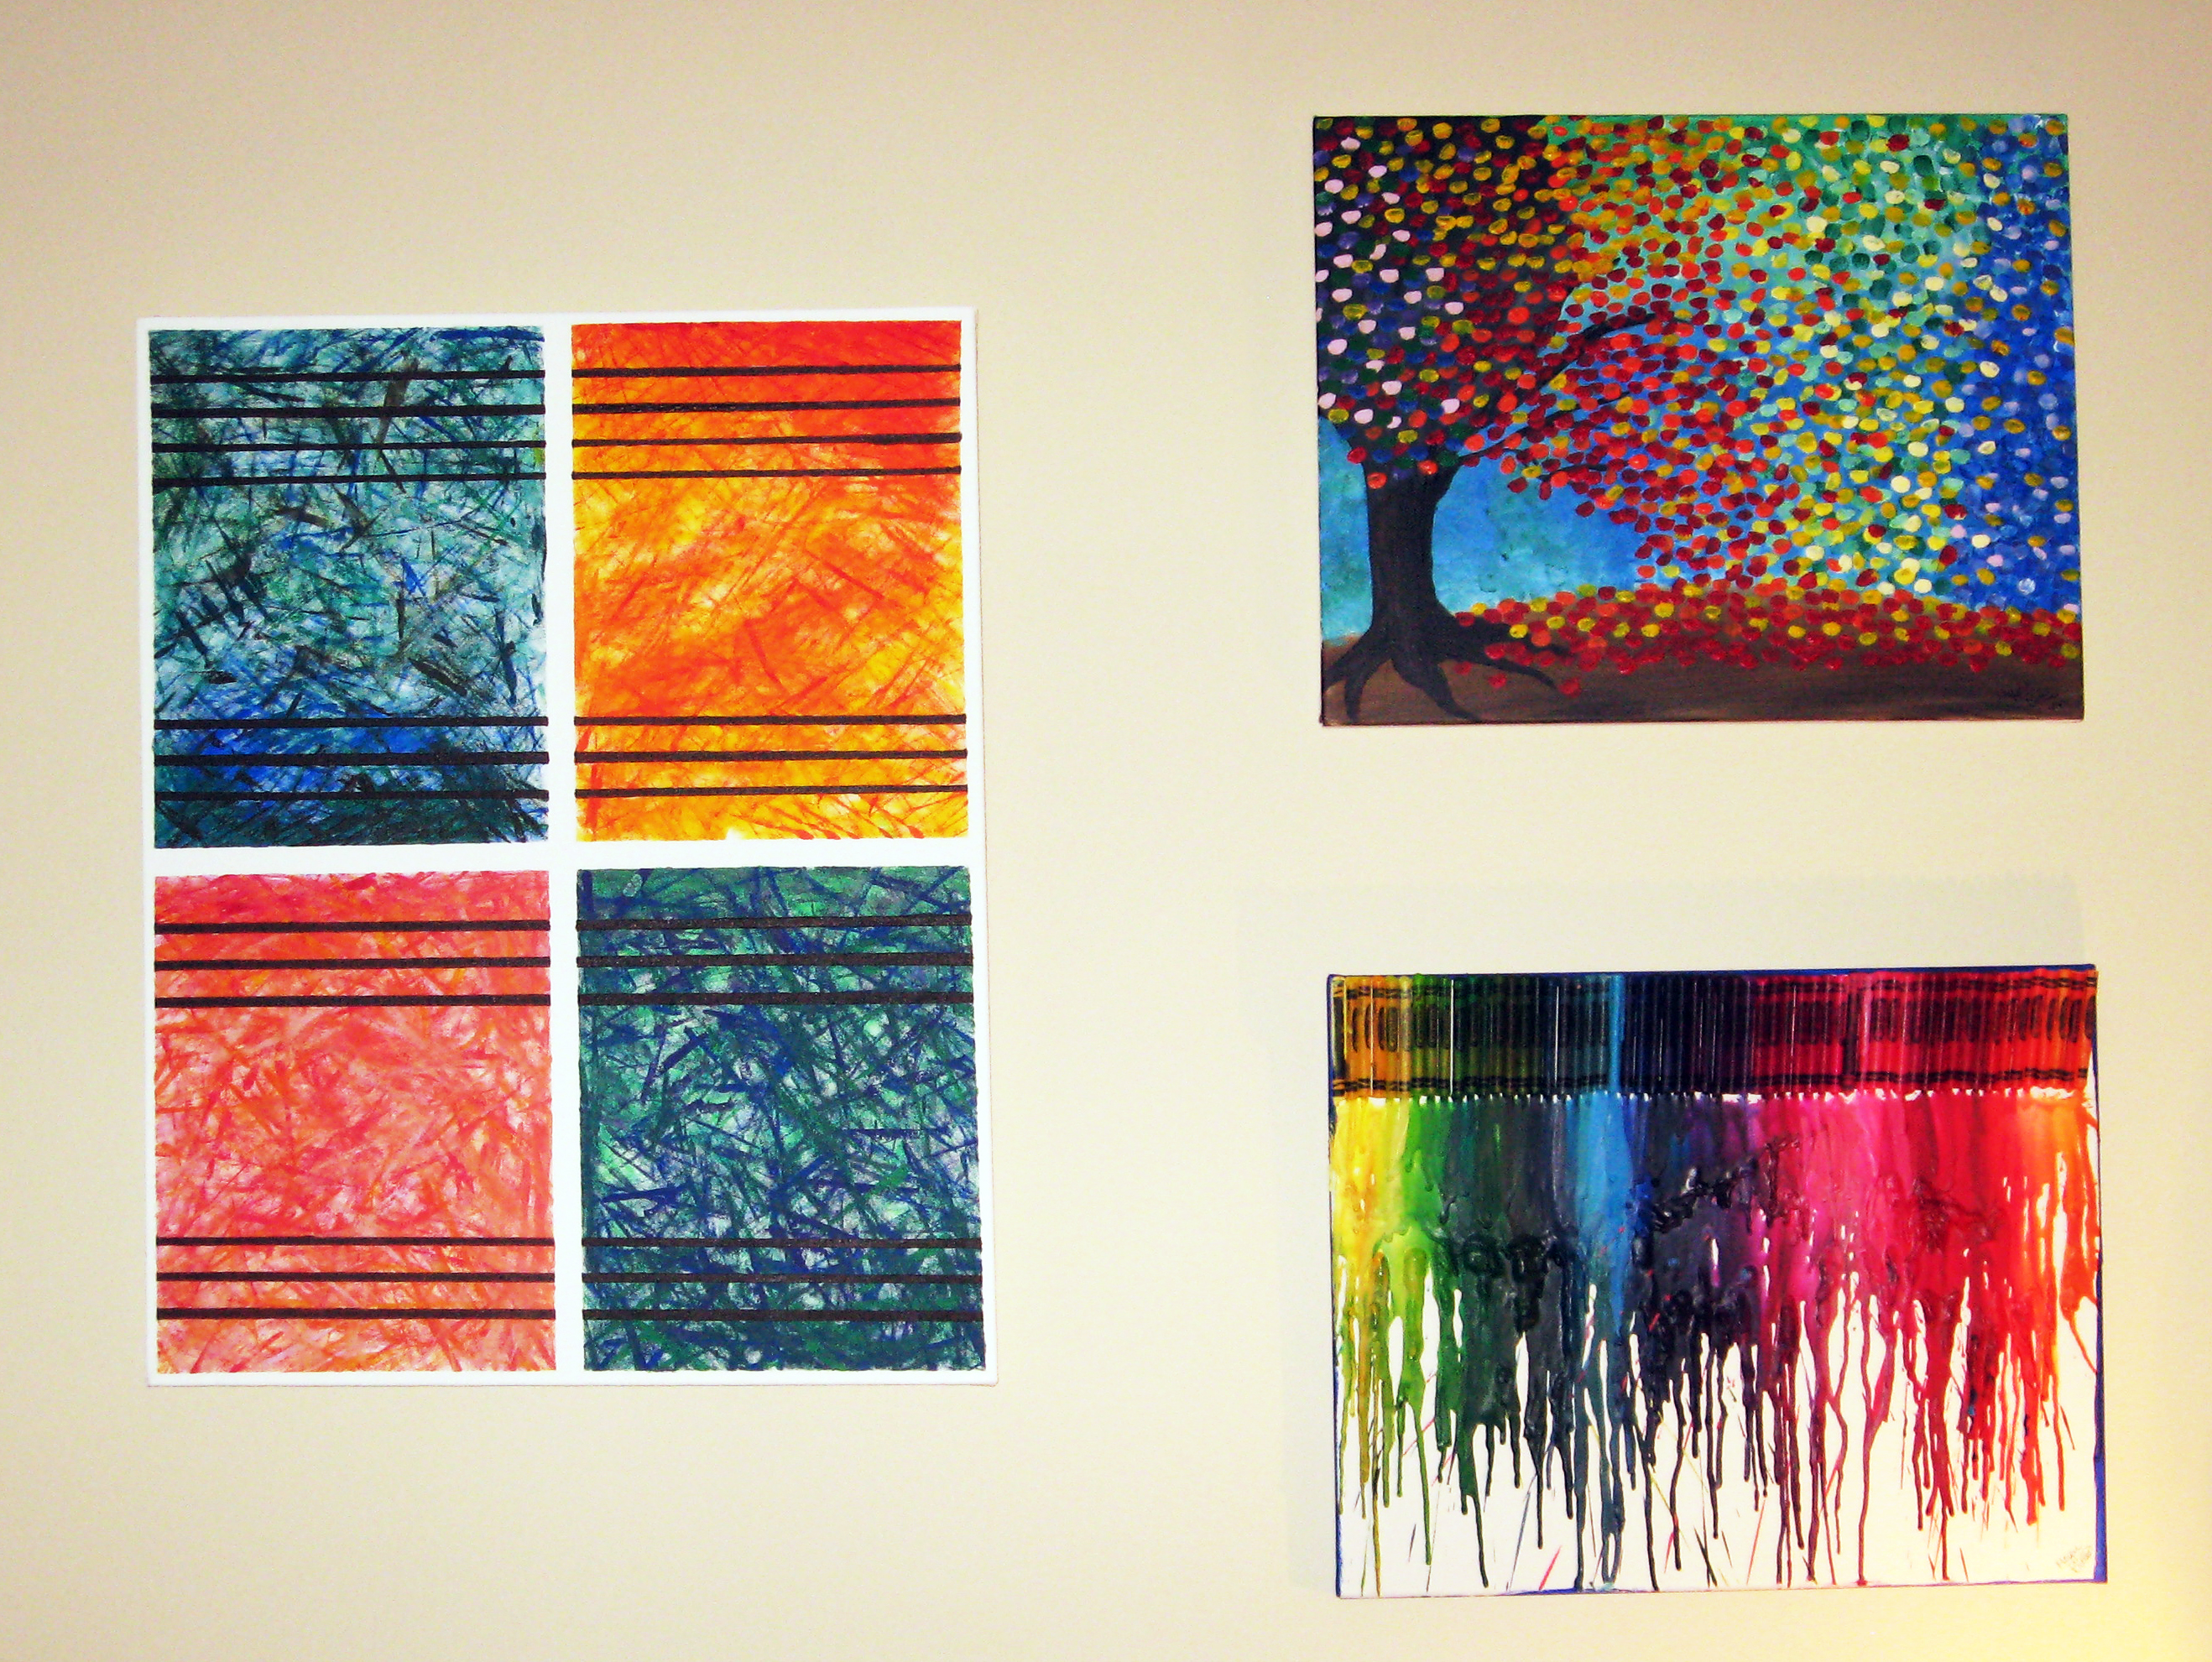 Diy abstract wall art make something mondays for Create a wall mural